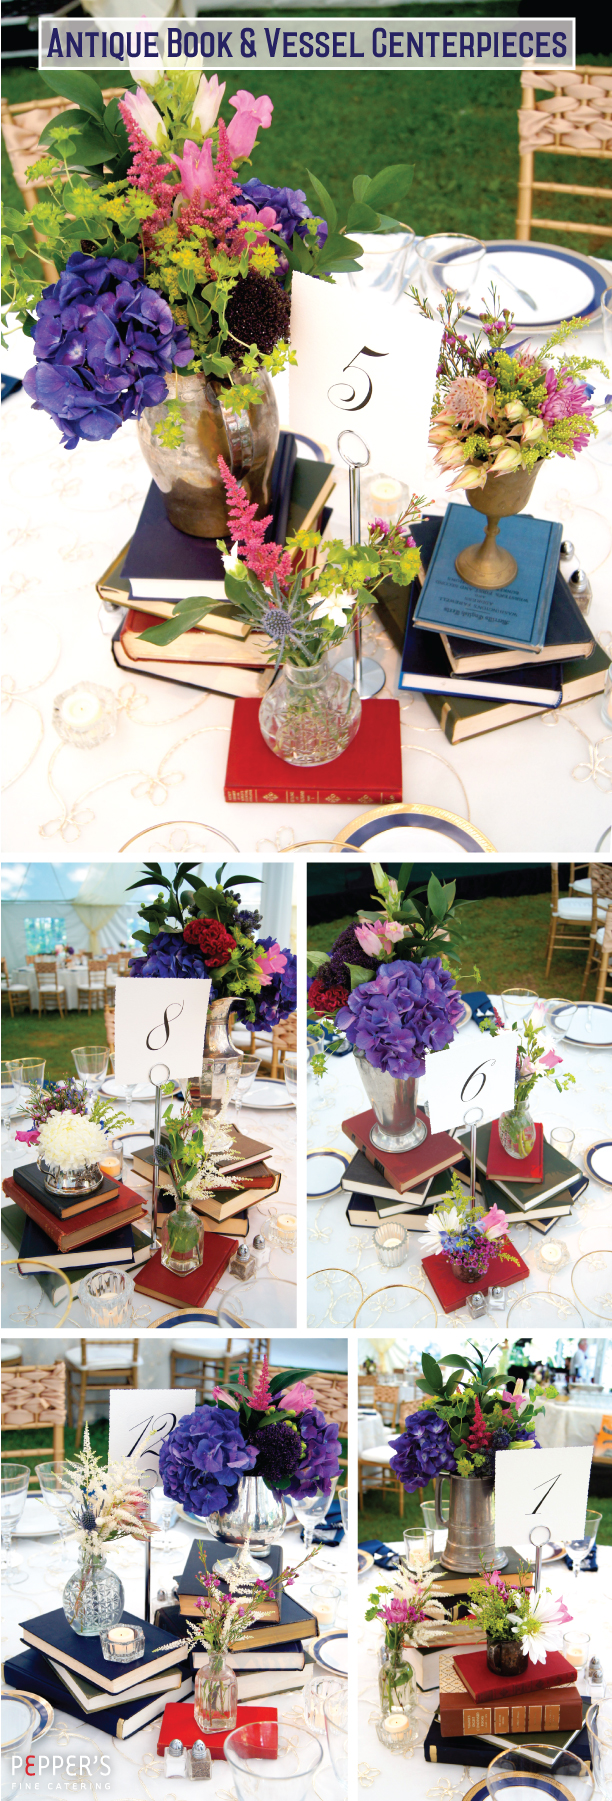 book and flower centerpieces